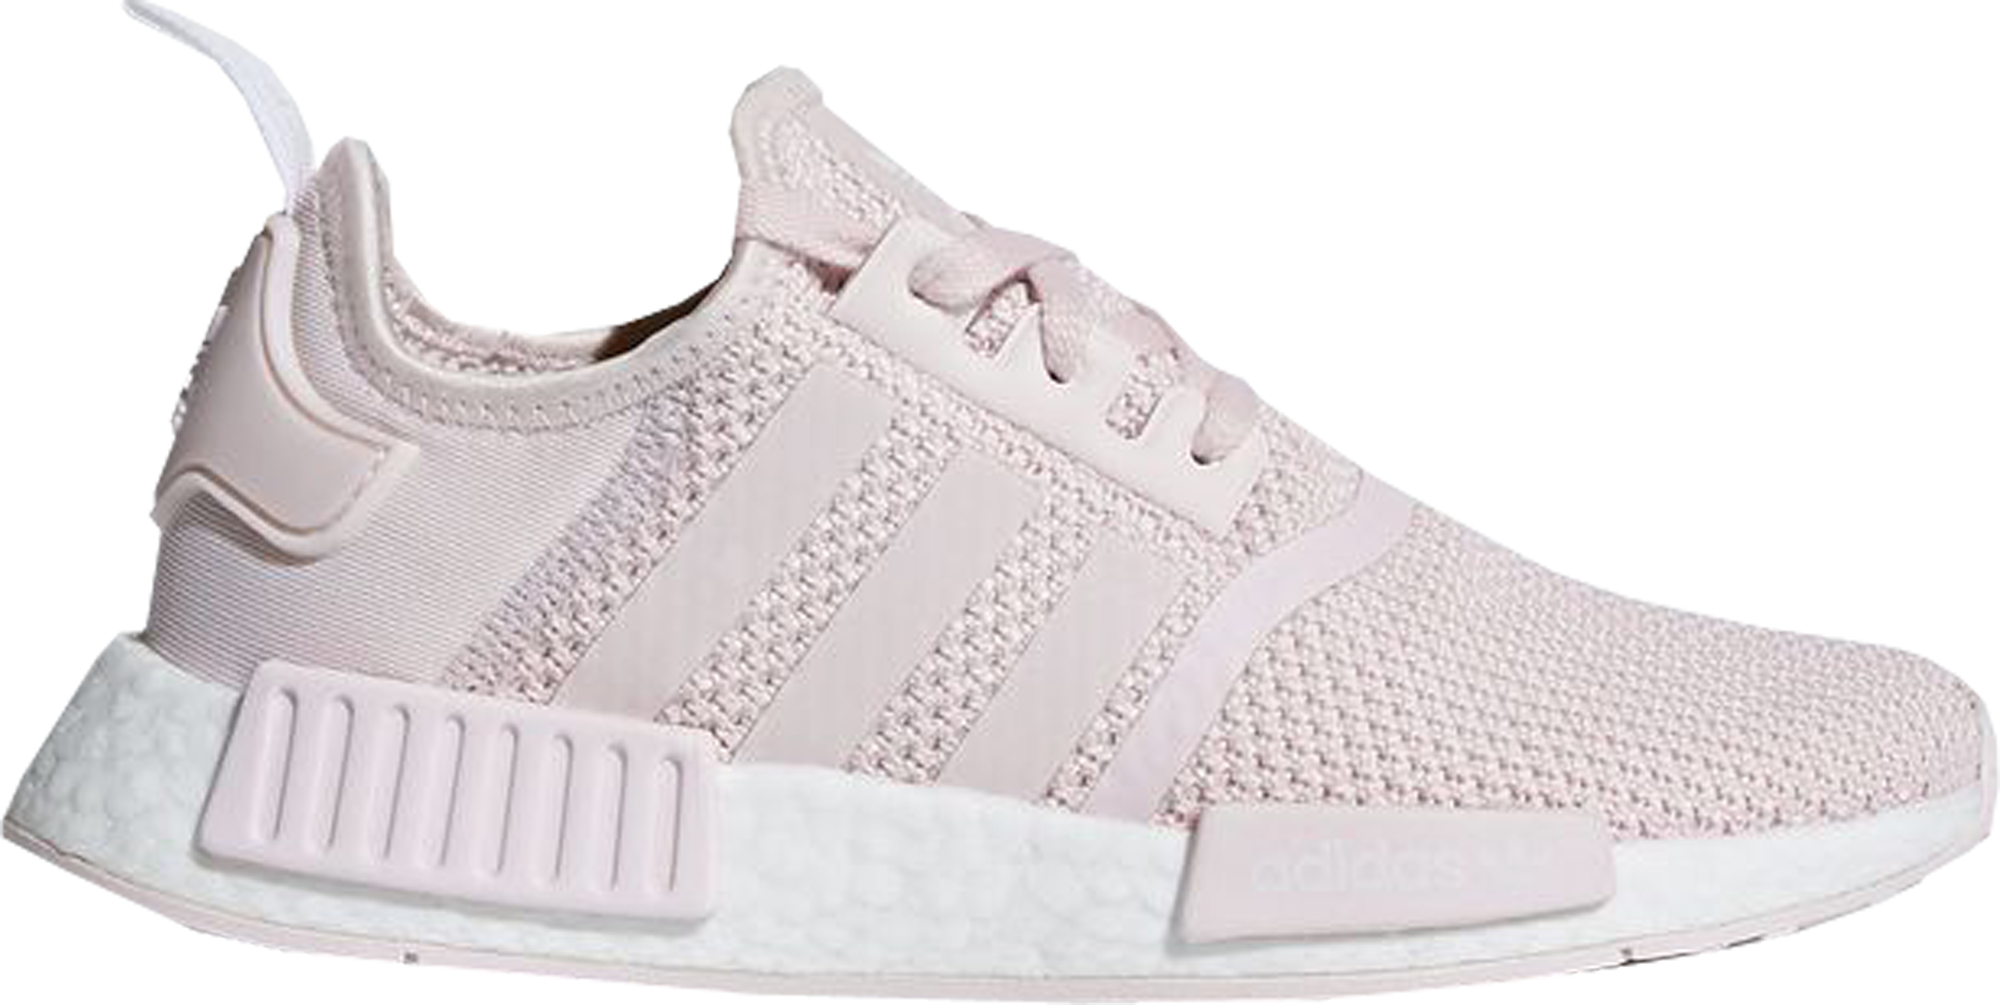 adidas NMD R1 Orchid Tint (W)